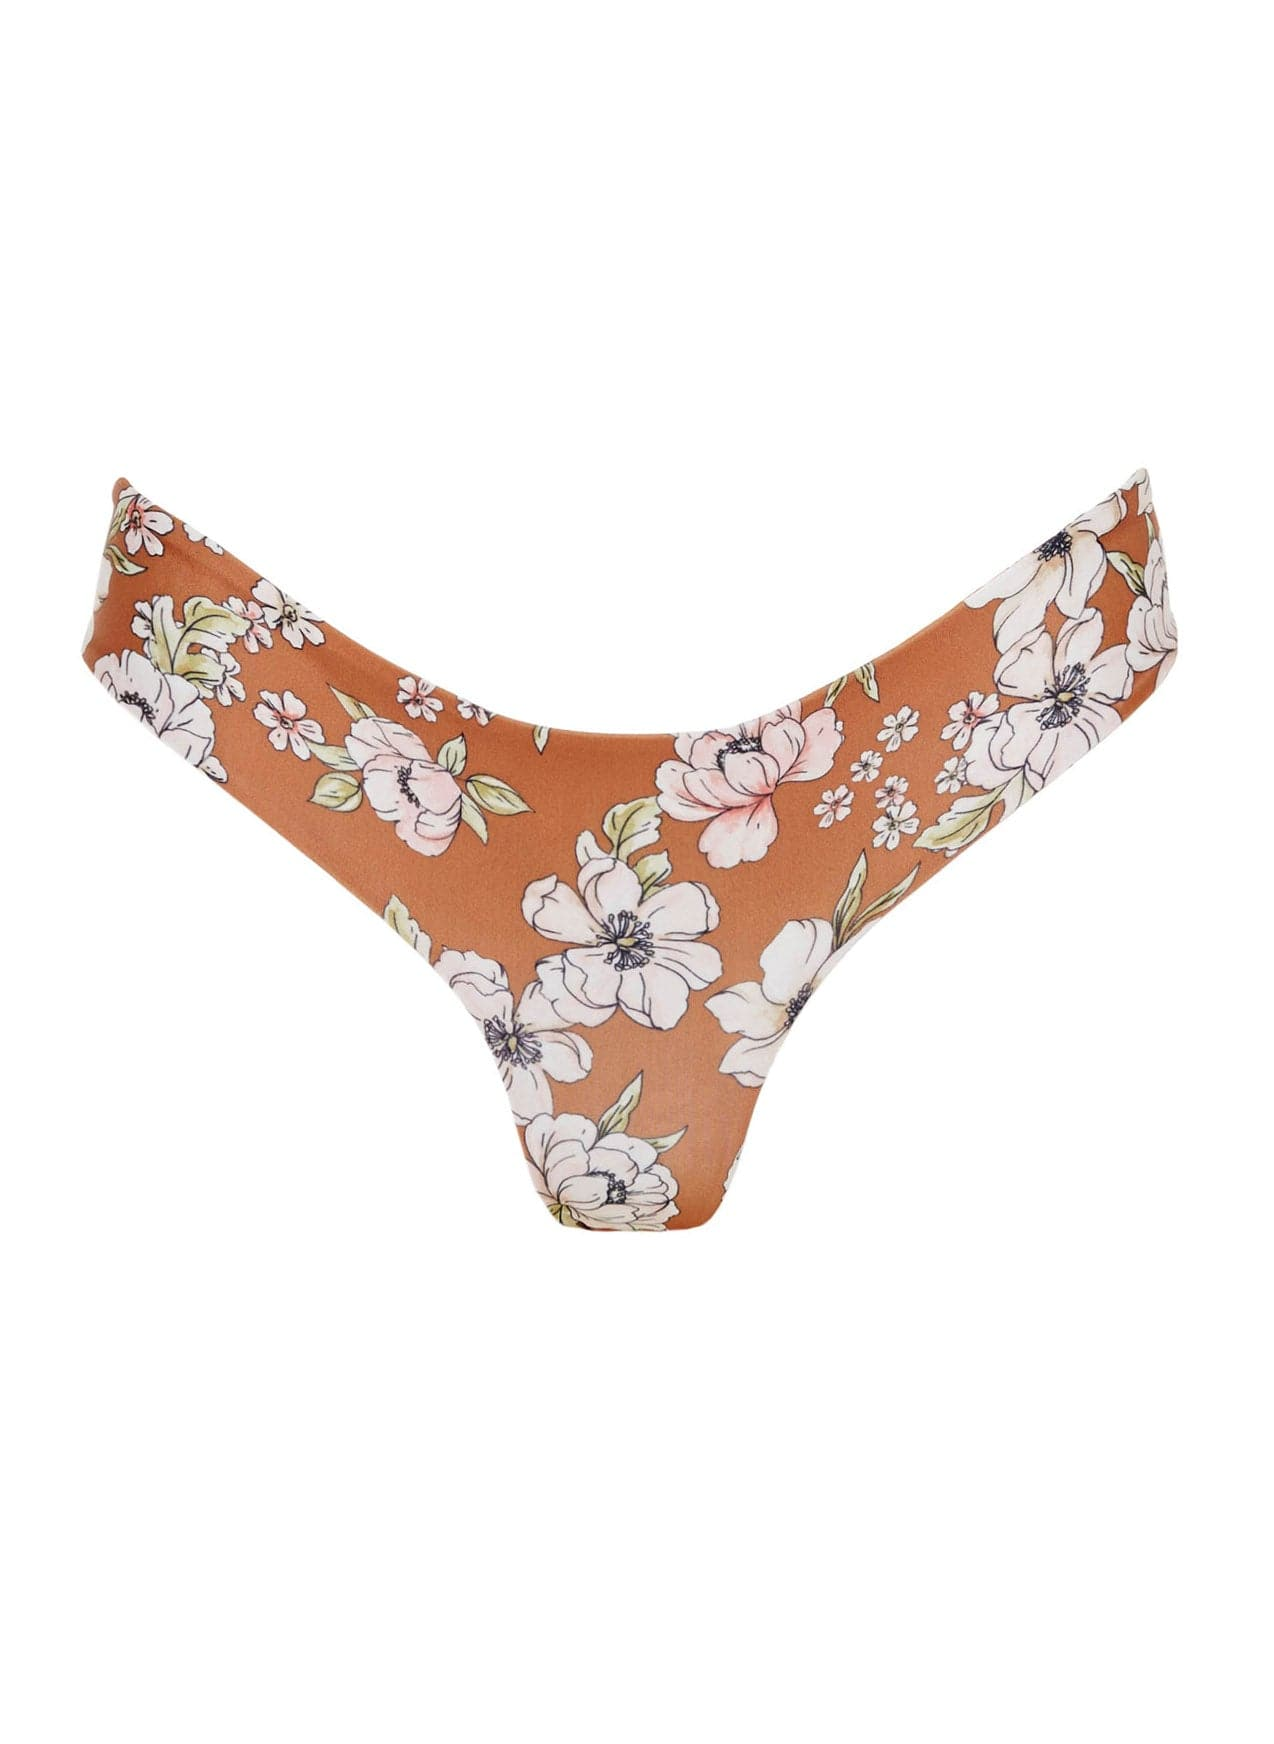 CECIL ROSE PRINT - CARA BOTTOM - FINAL SALE